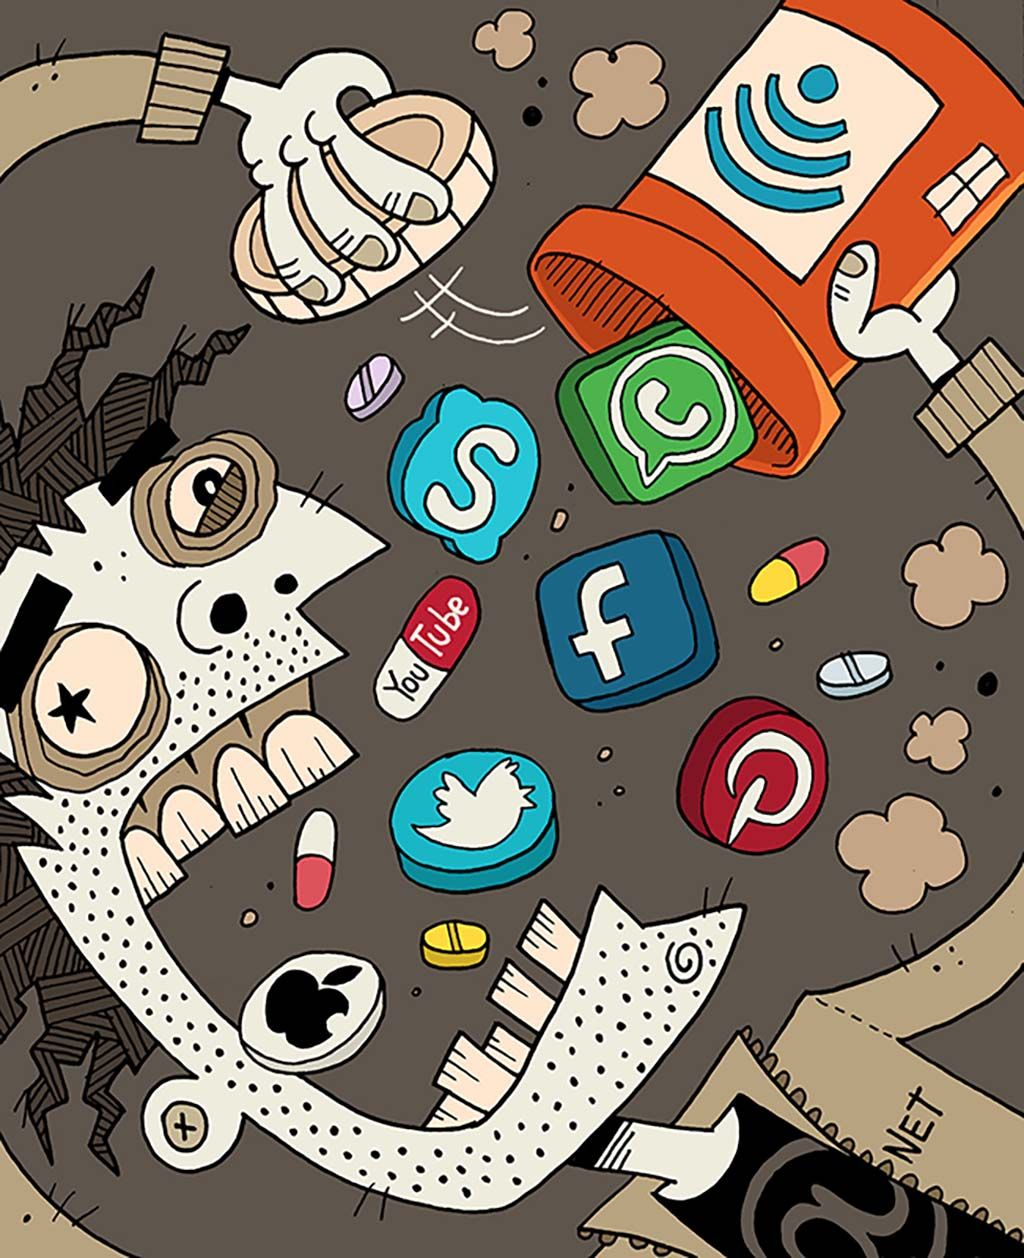 Artists Around The World Criticize Social Media In The Best Way Possible in  2021 | Social media art, Social media drawings, Social media poster